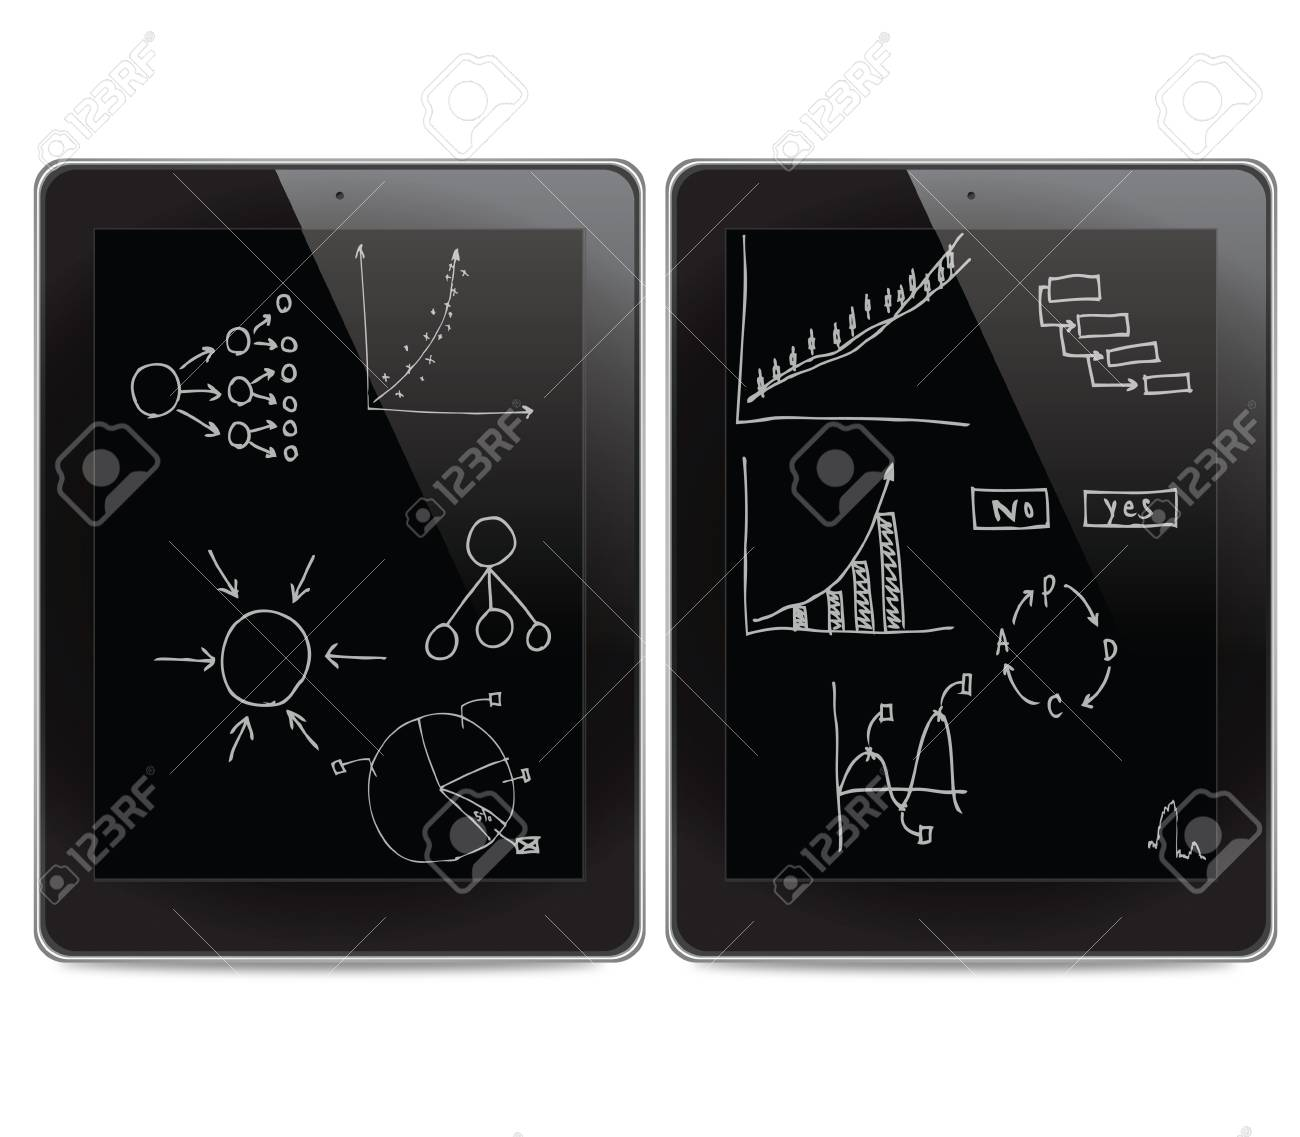 Drawing business plan on tablet computer Stock Photo - 16292096